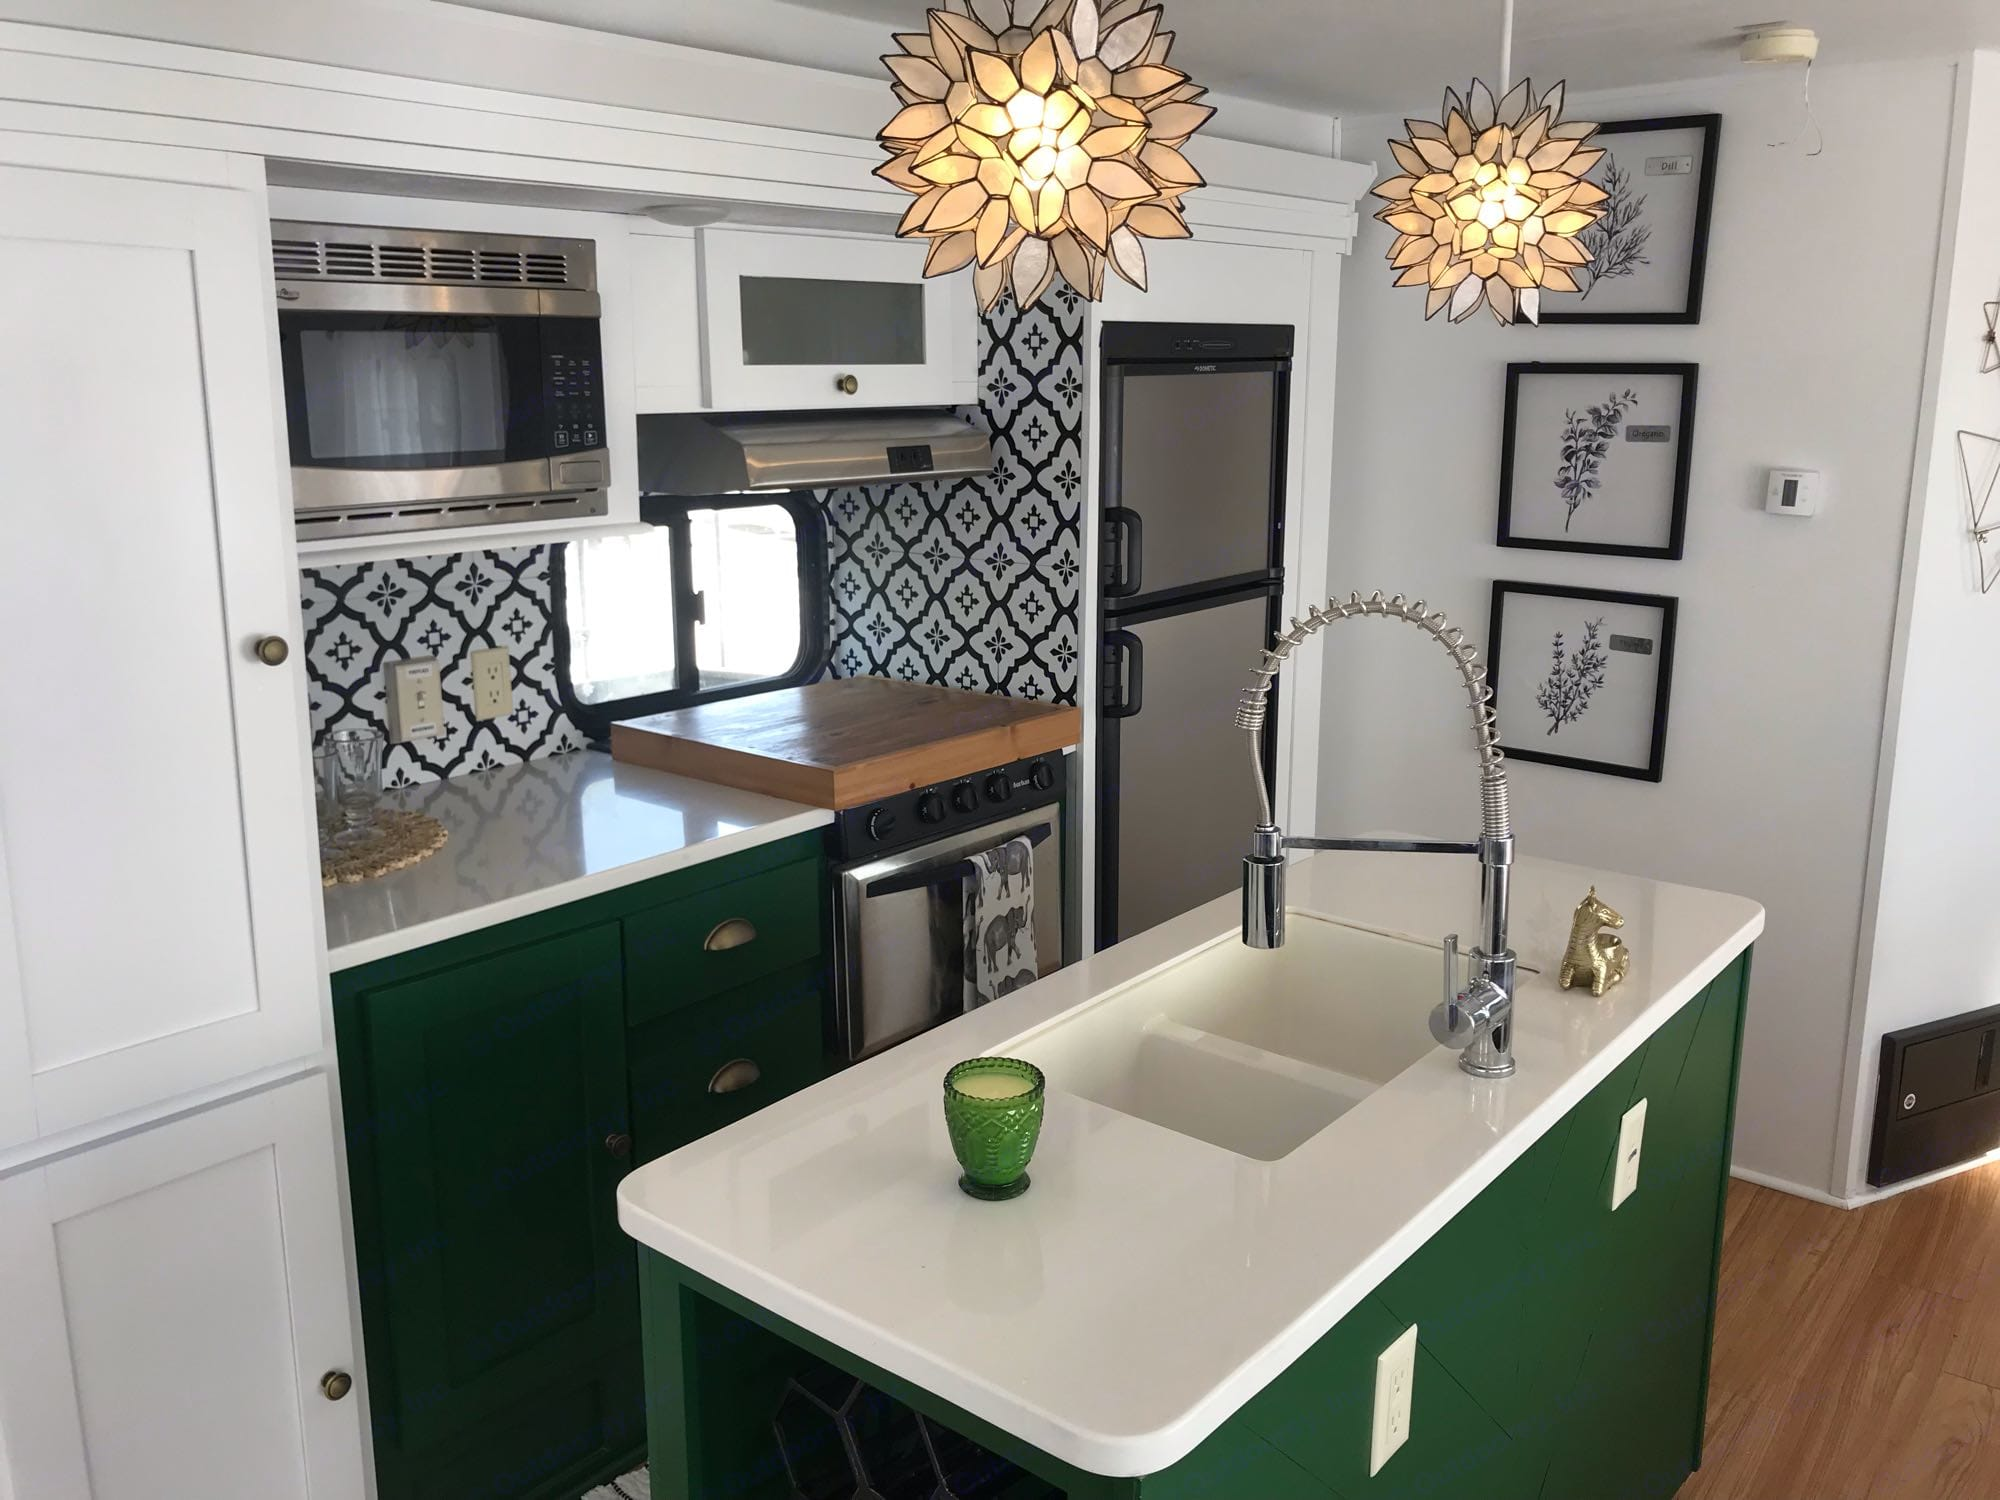 In style green kitchen with shiplap island and solid countertops. The island lights in this space are inspiring.. Forest River Wildwood 2018